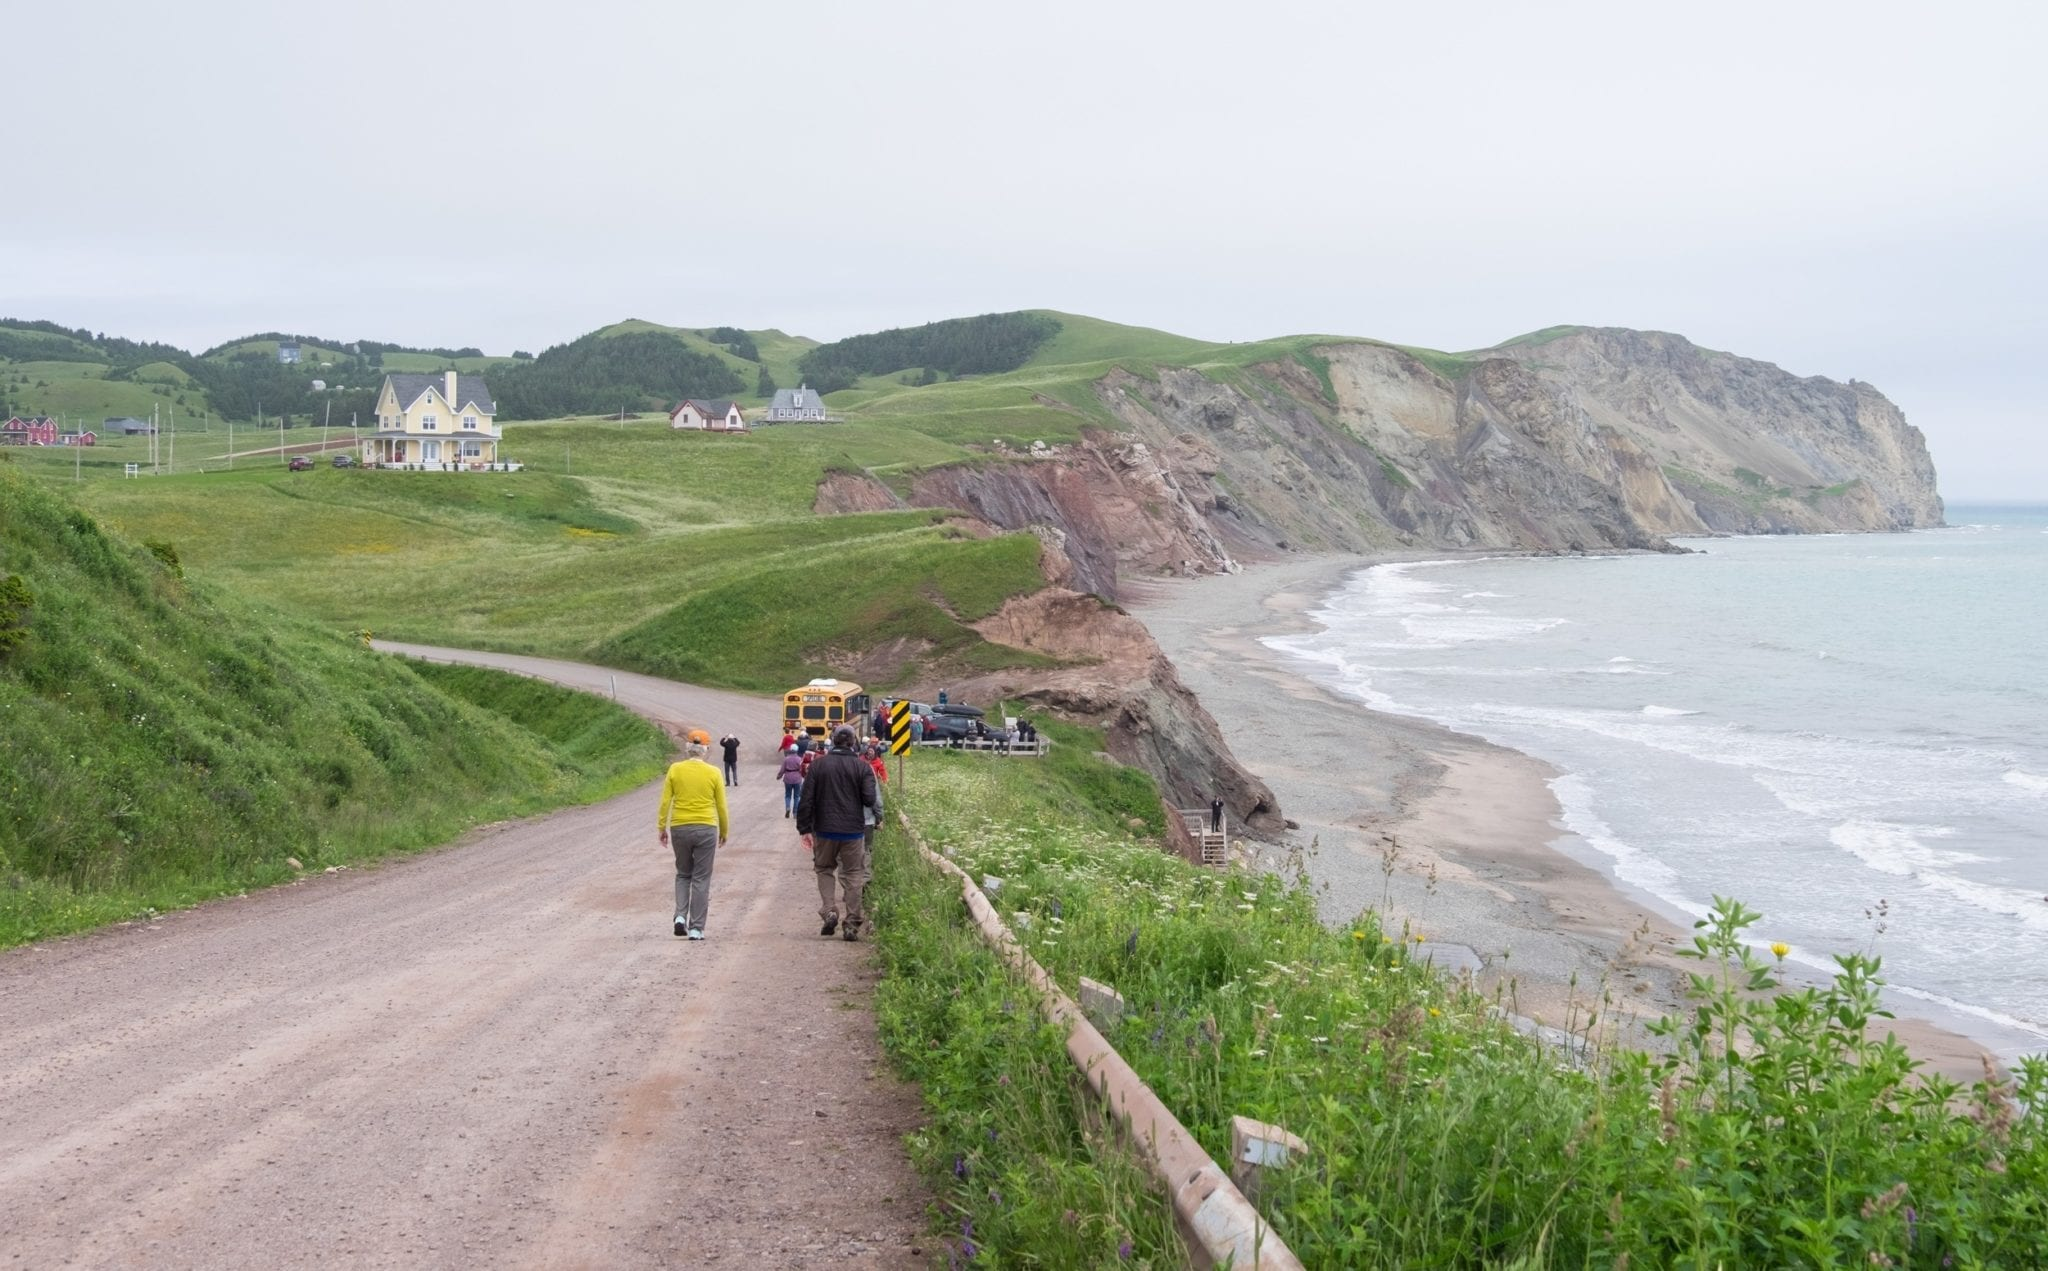 A group walks down a dirt road in the Iles-de-la-Madeleine; on the right is a gray cliff leading down to a rocky beach.